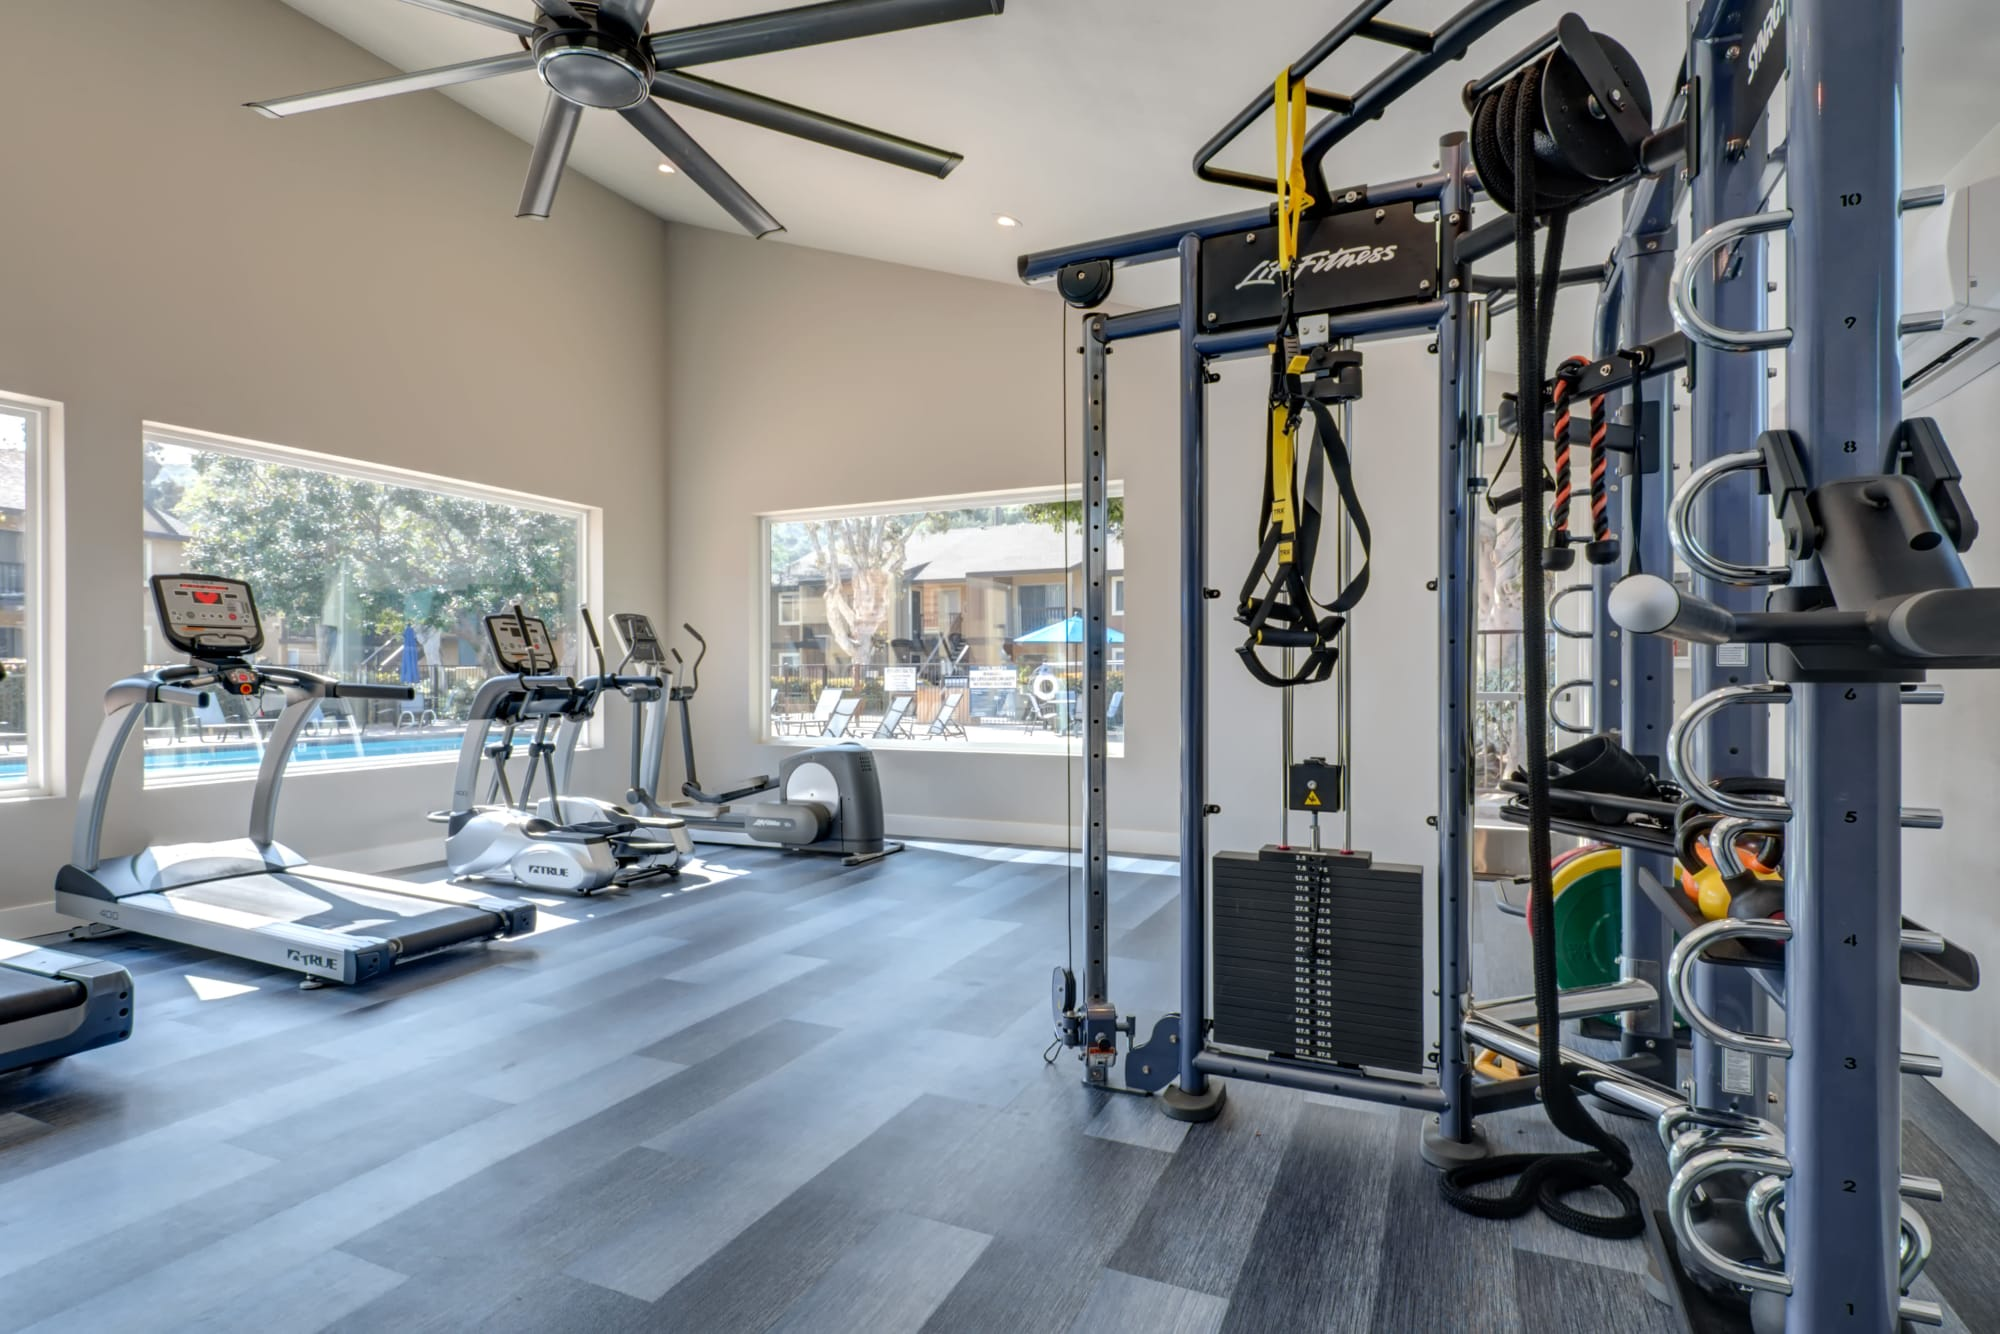 fitness center with view of the pool area with large windows at Terra Nova Villas in Chula Vista, CA